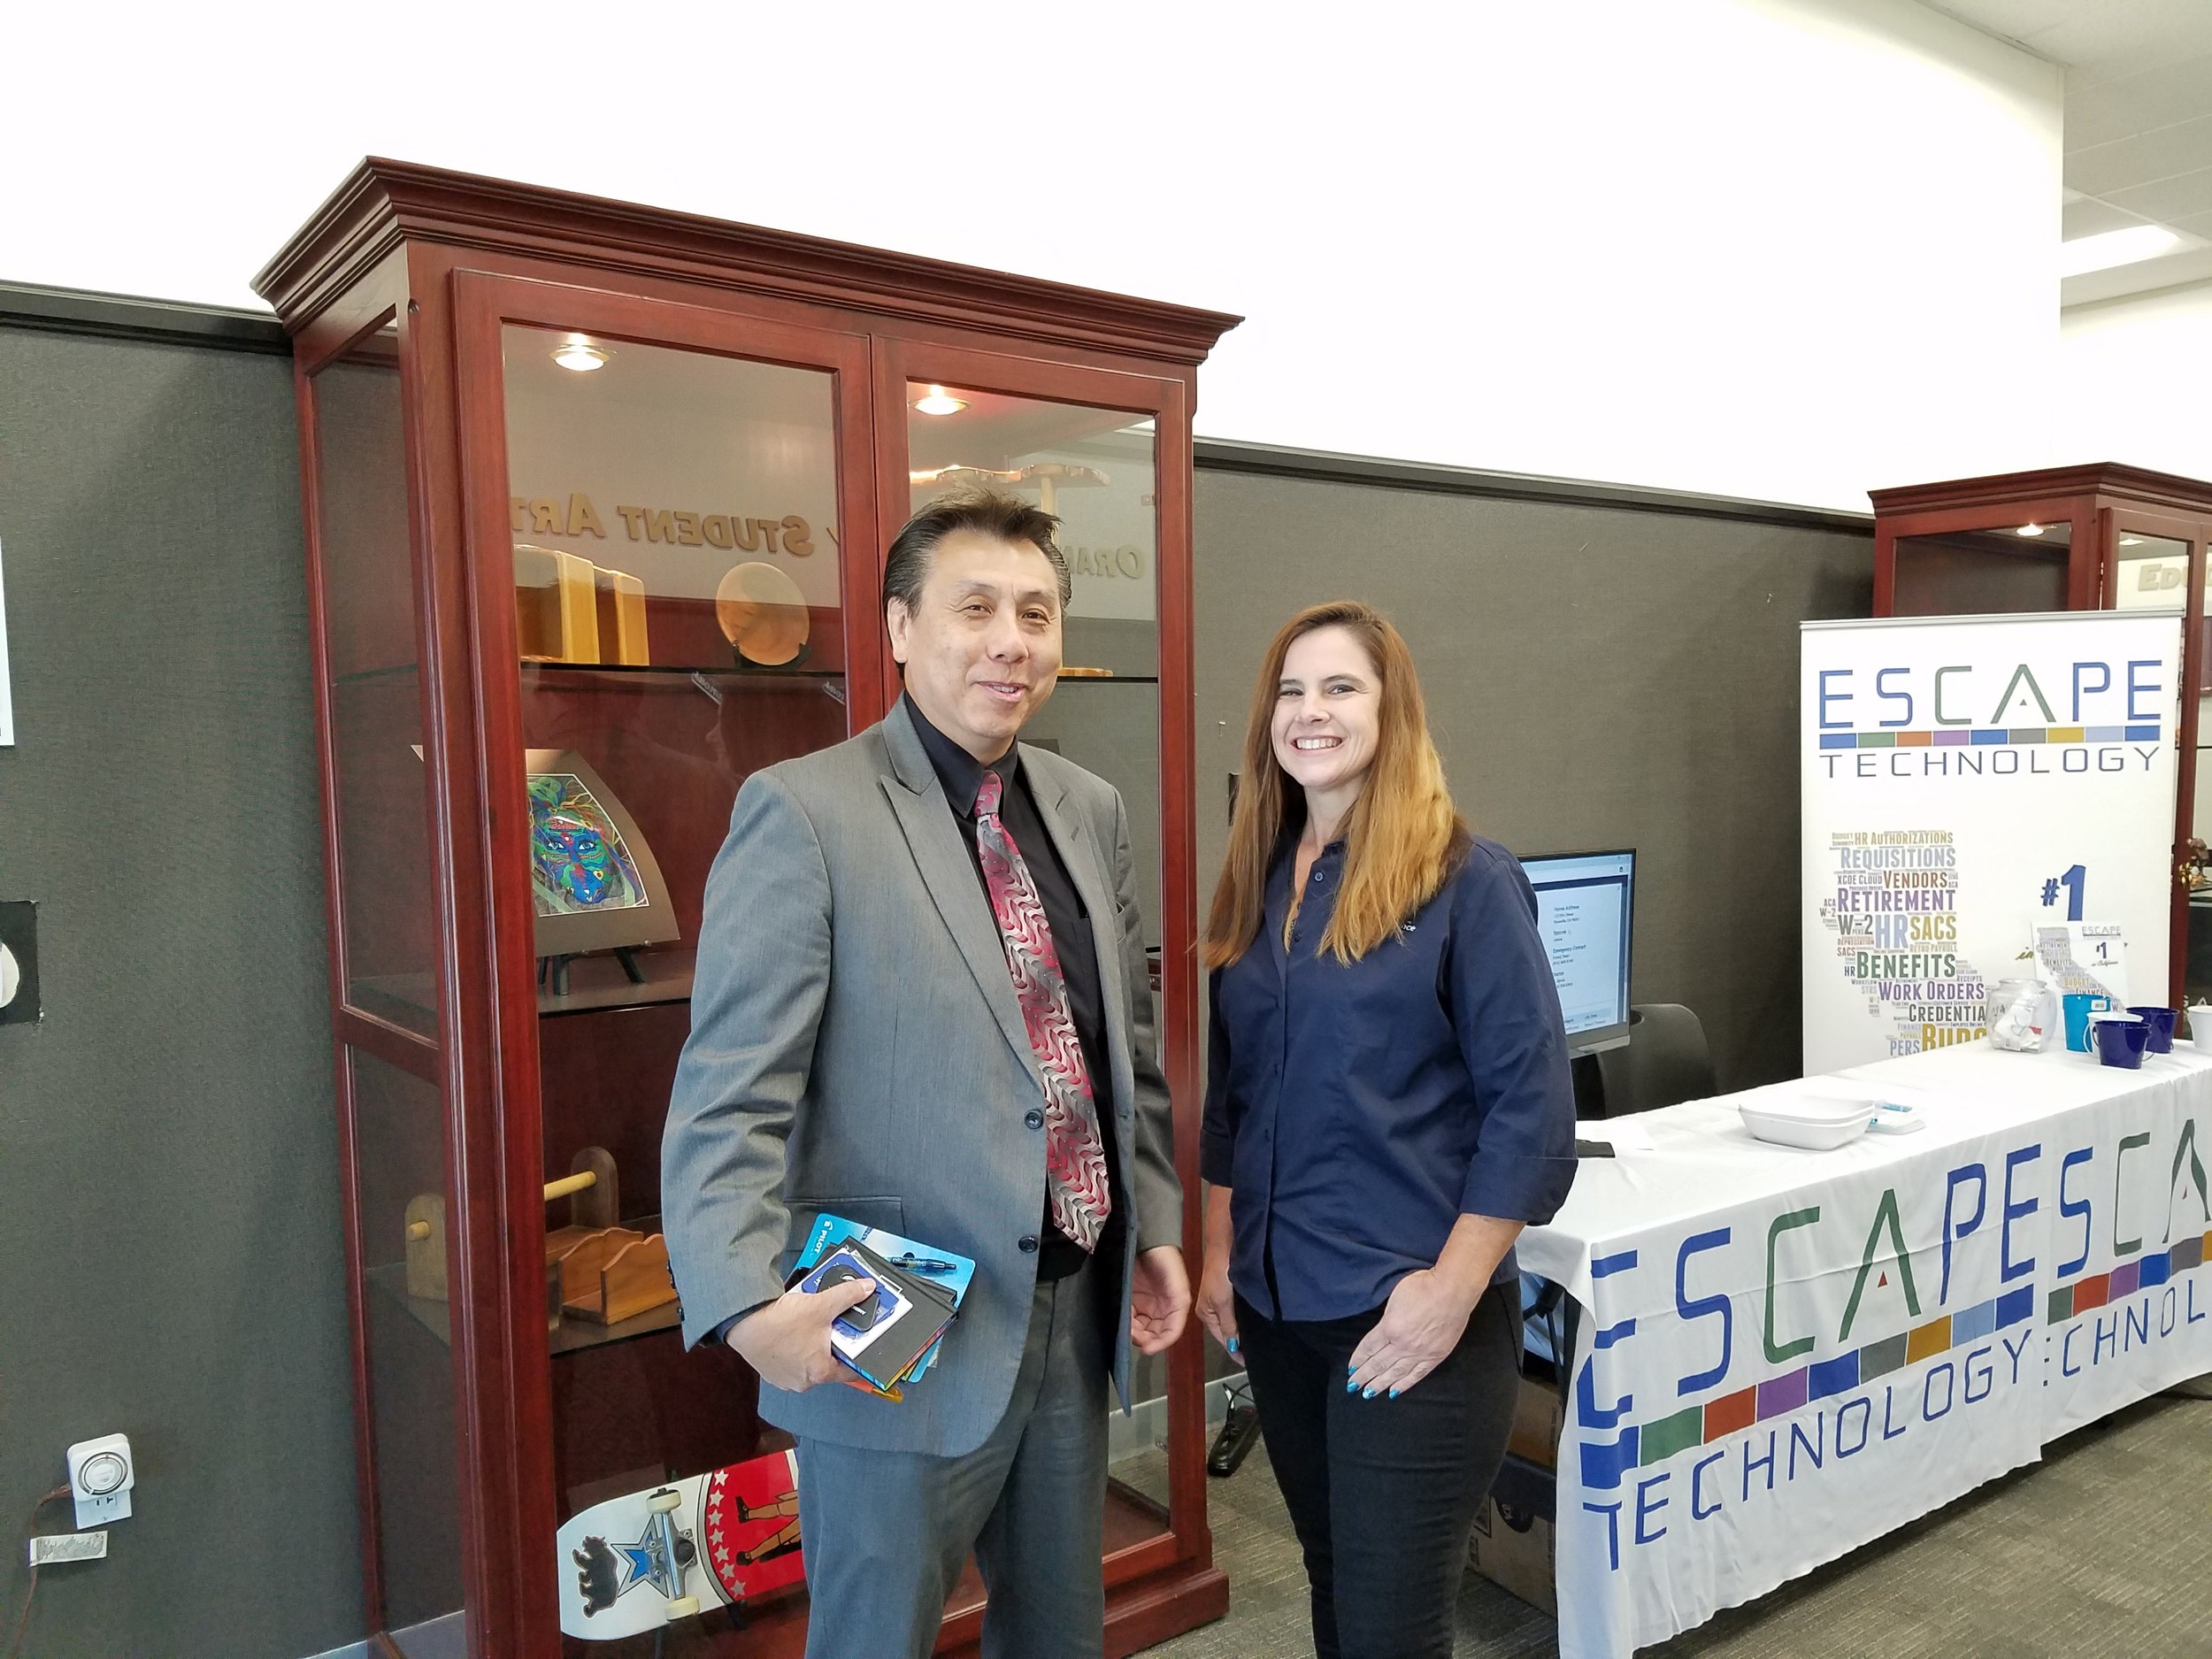 Carl Fong, Chief Technology Officer, OCDE, and Kathy Carlson, Escape Senior Project Manager, chat about the latest school business news.